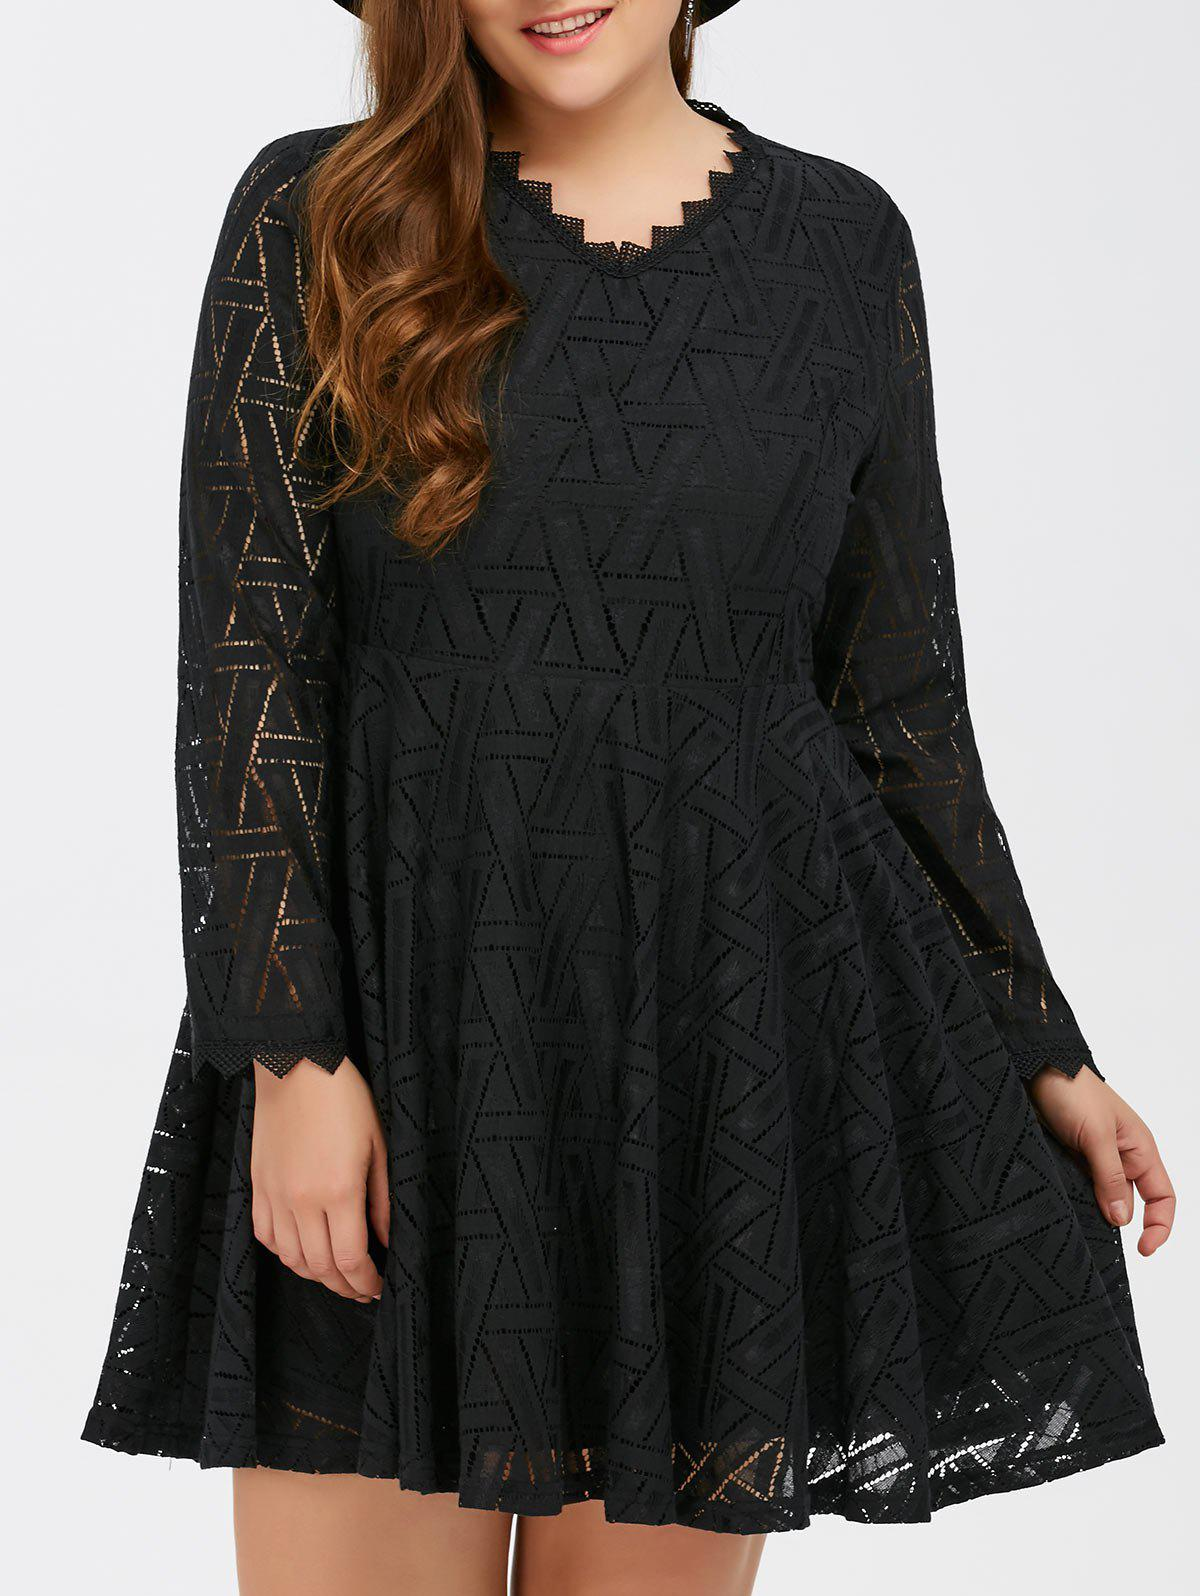 2018 Plus Size Lace Long Sleeve Skater Dress Black Xl In Plus Size